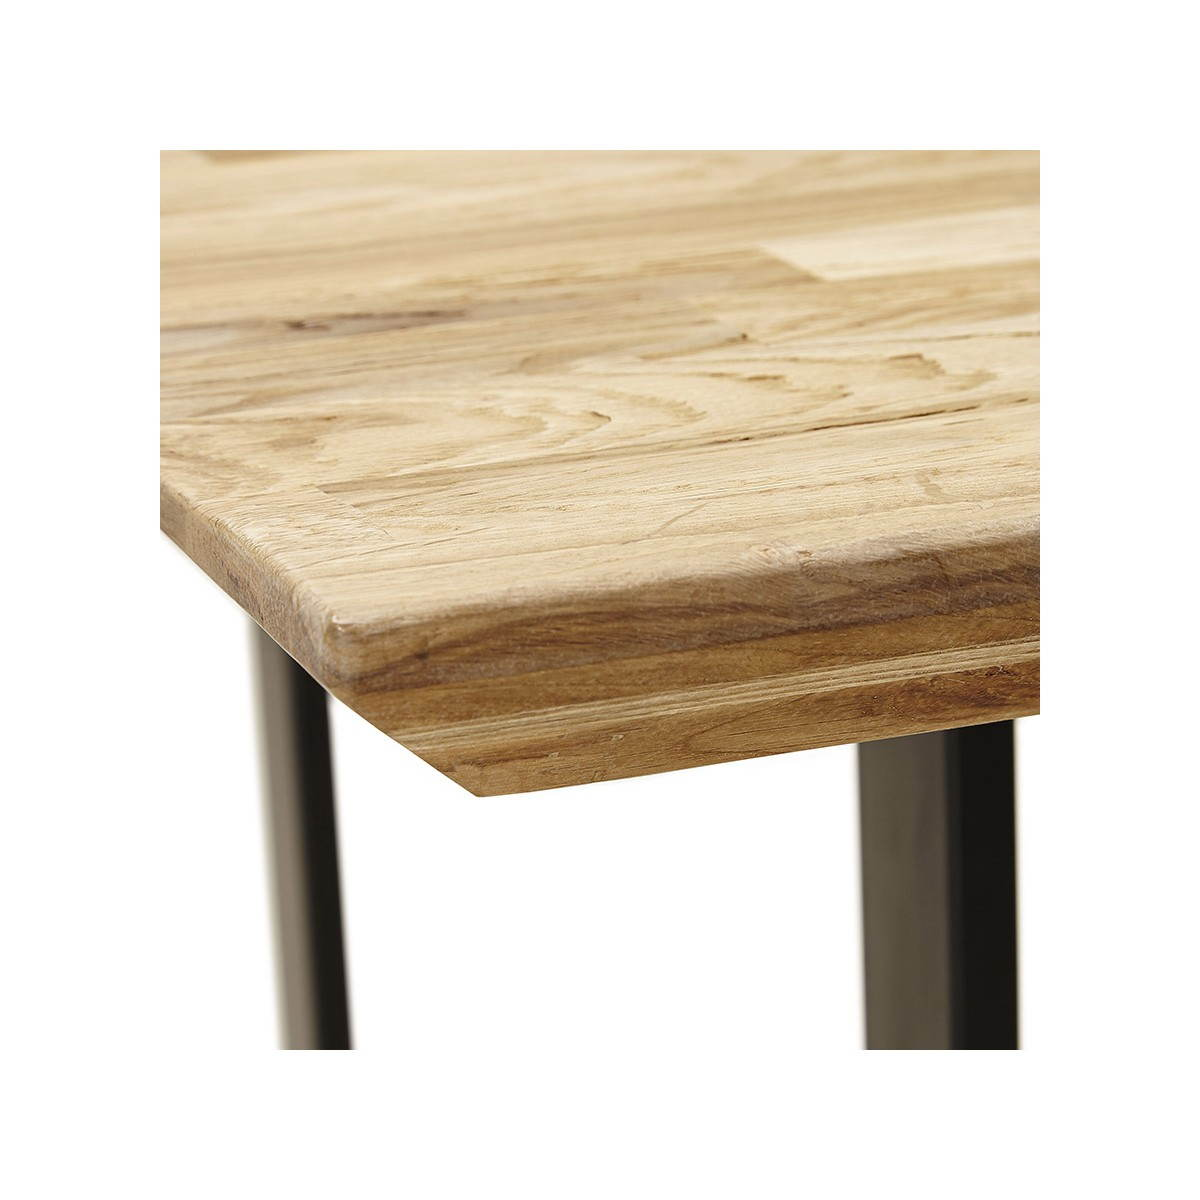 Table moderne rectangulaire nanou en ch ne bois naturel - Table ferme chene ...